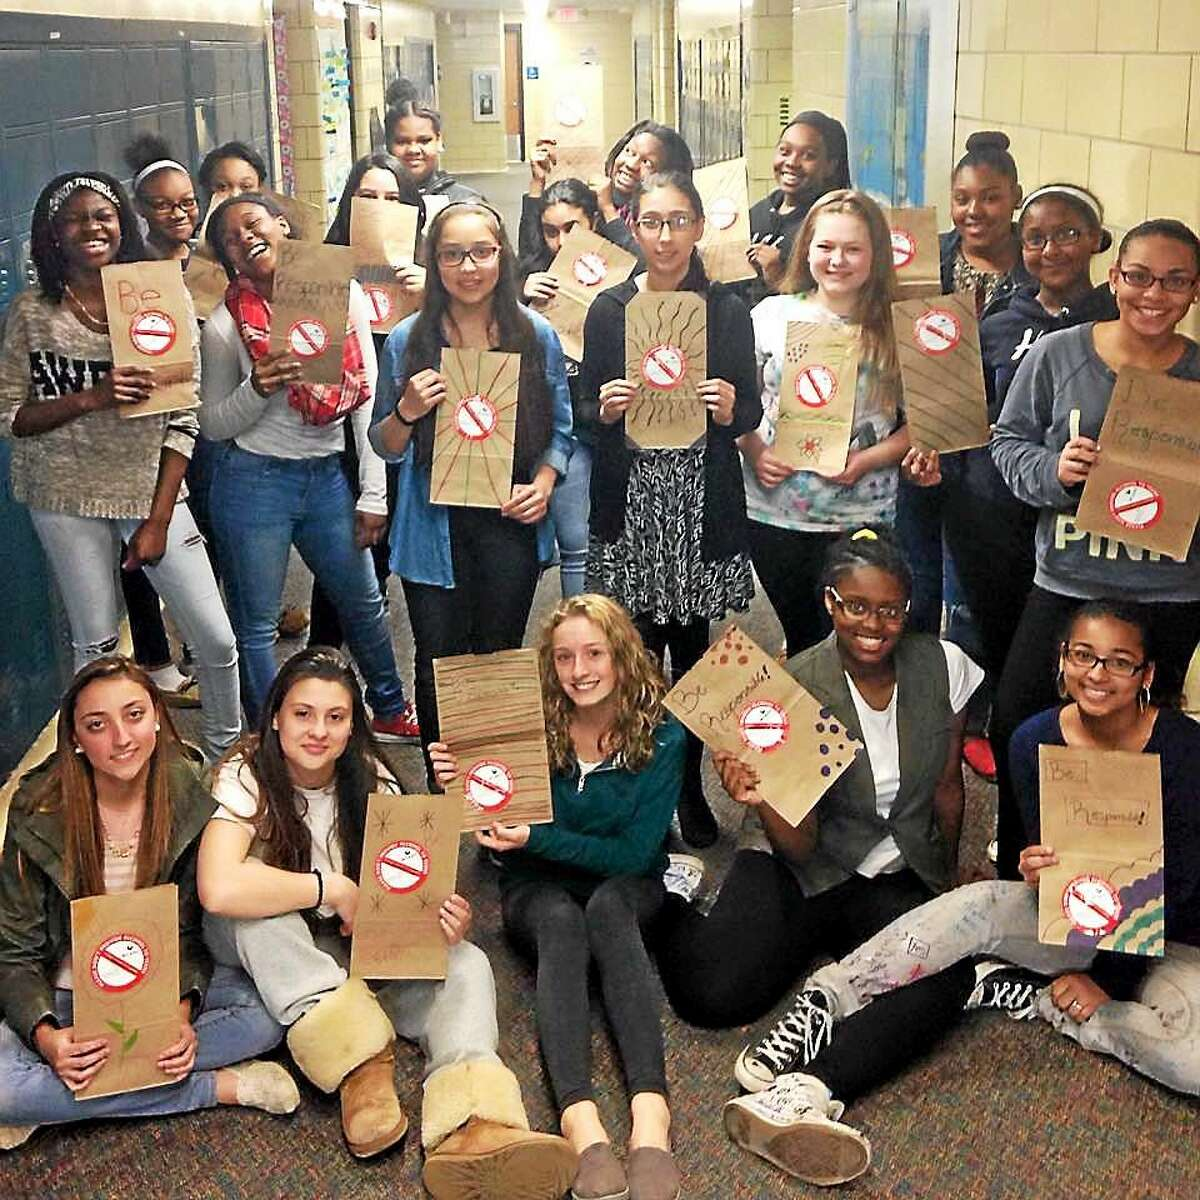 In April, Middletown students participated in Rushford's Peer leadership program, Rams In Action at Woodrow Wilson Middle School, which reminds adults not to provide alcohol to teens. Cromwell's recreation staff are hoping to create a mentoring program based on a similar model.